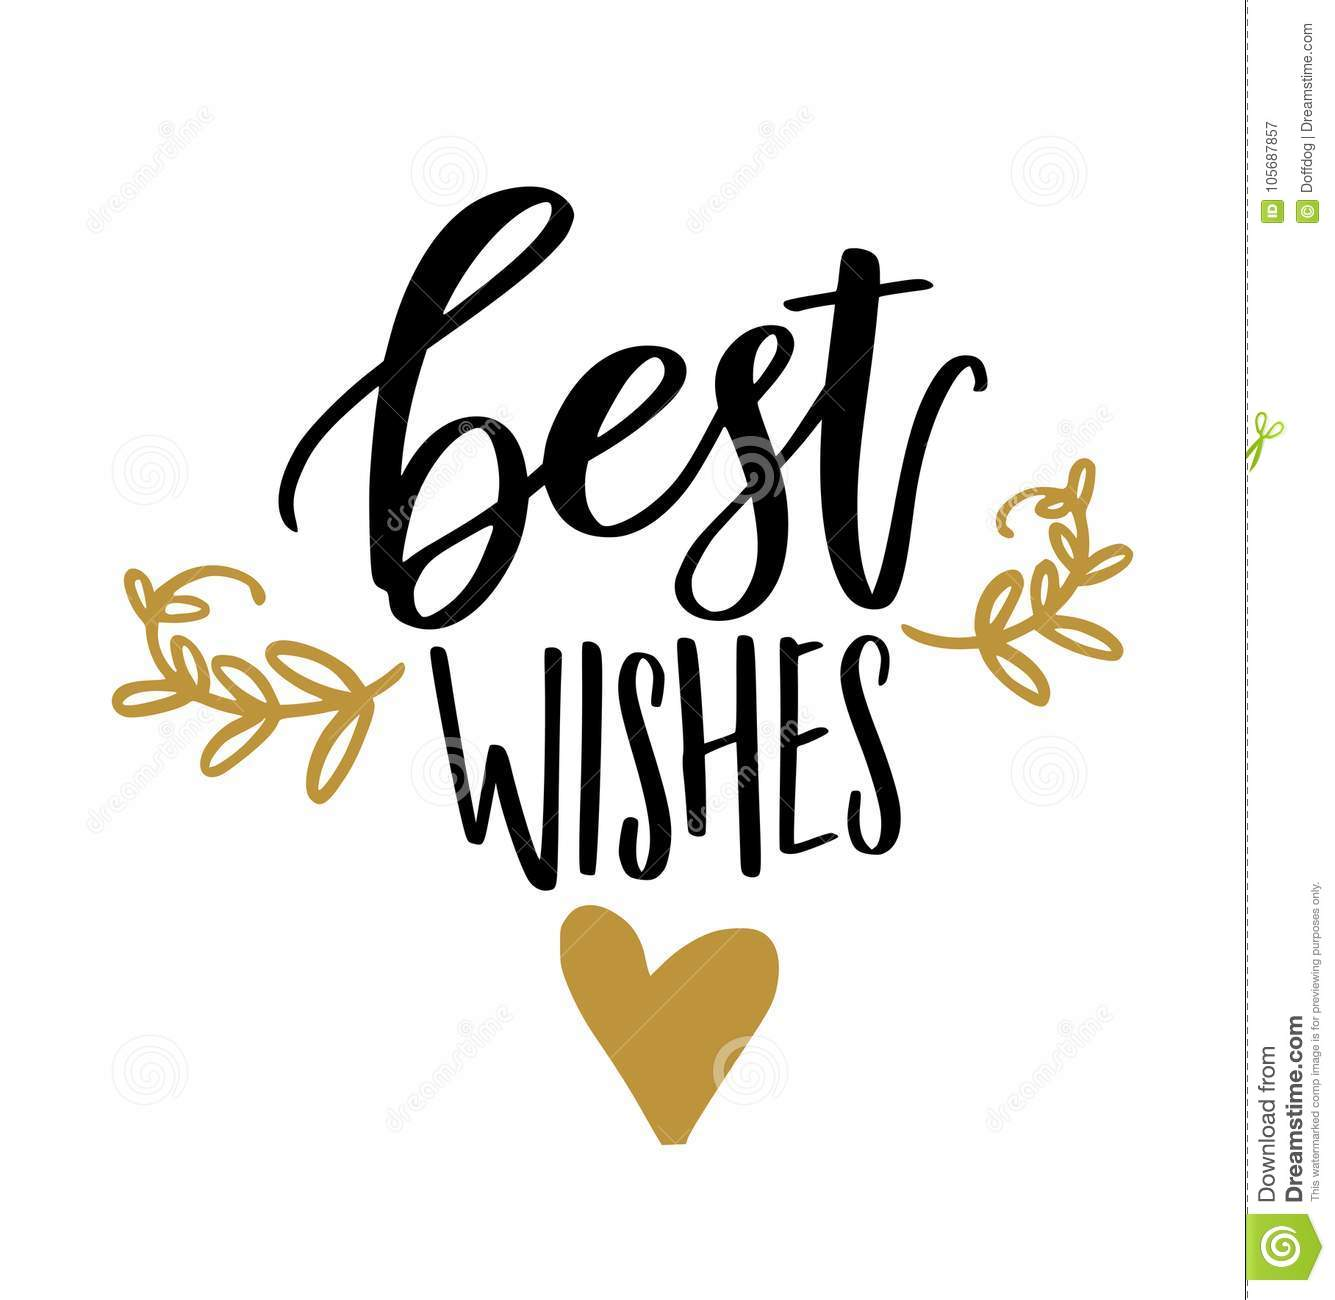 best wishes calligraphy stock vector illustration of banner 105687857